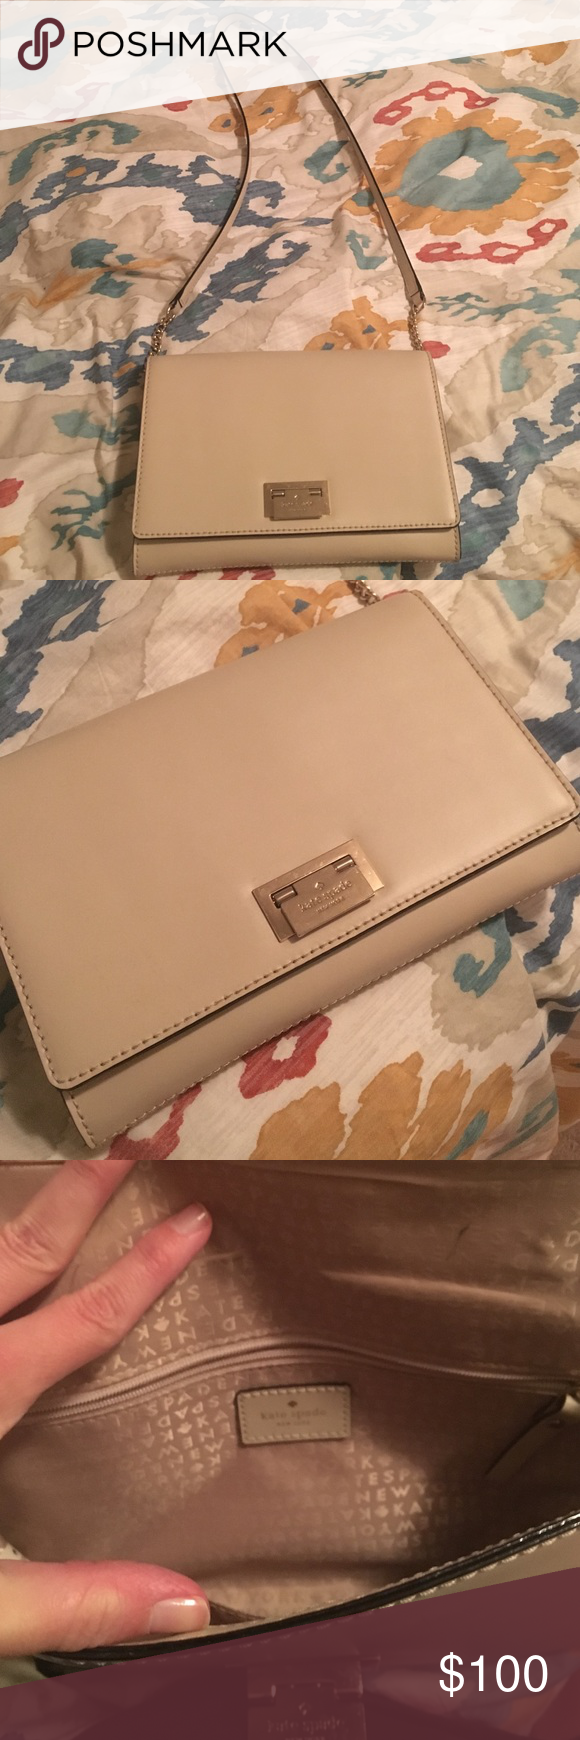 Kate Spade Envelope Purse This purse is nude colored and in great condition! Pen mark on interior as pictured. kate spade Bags Crossbody Bags